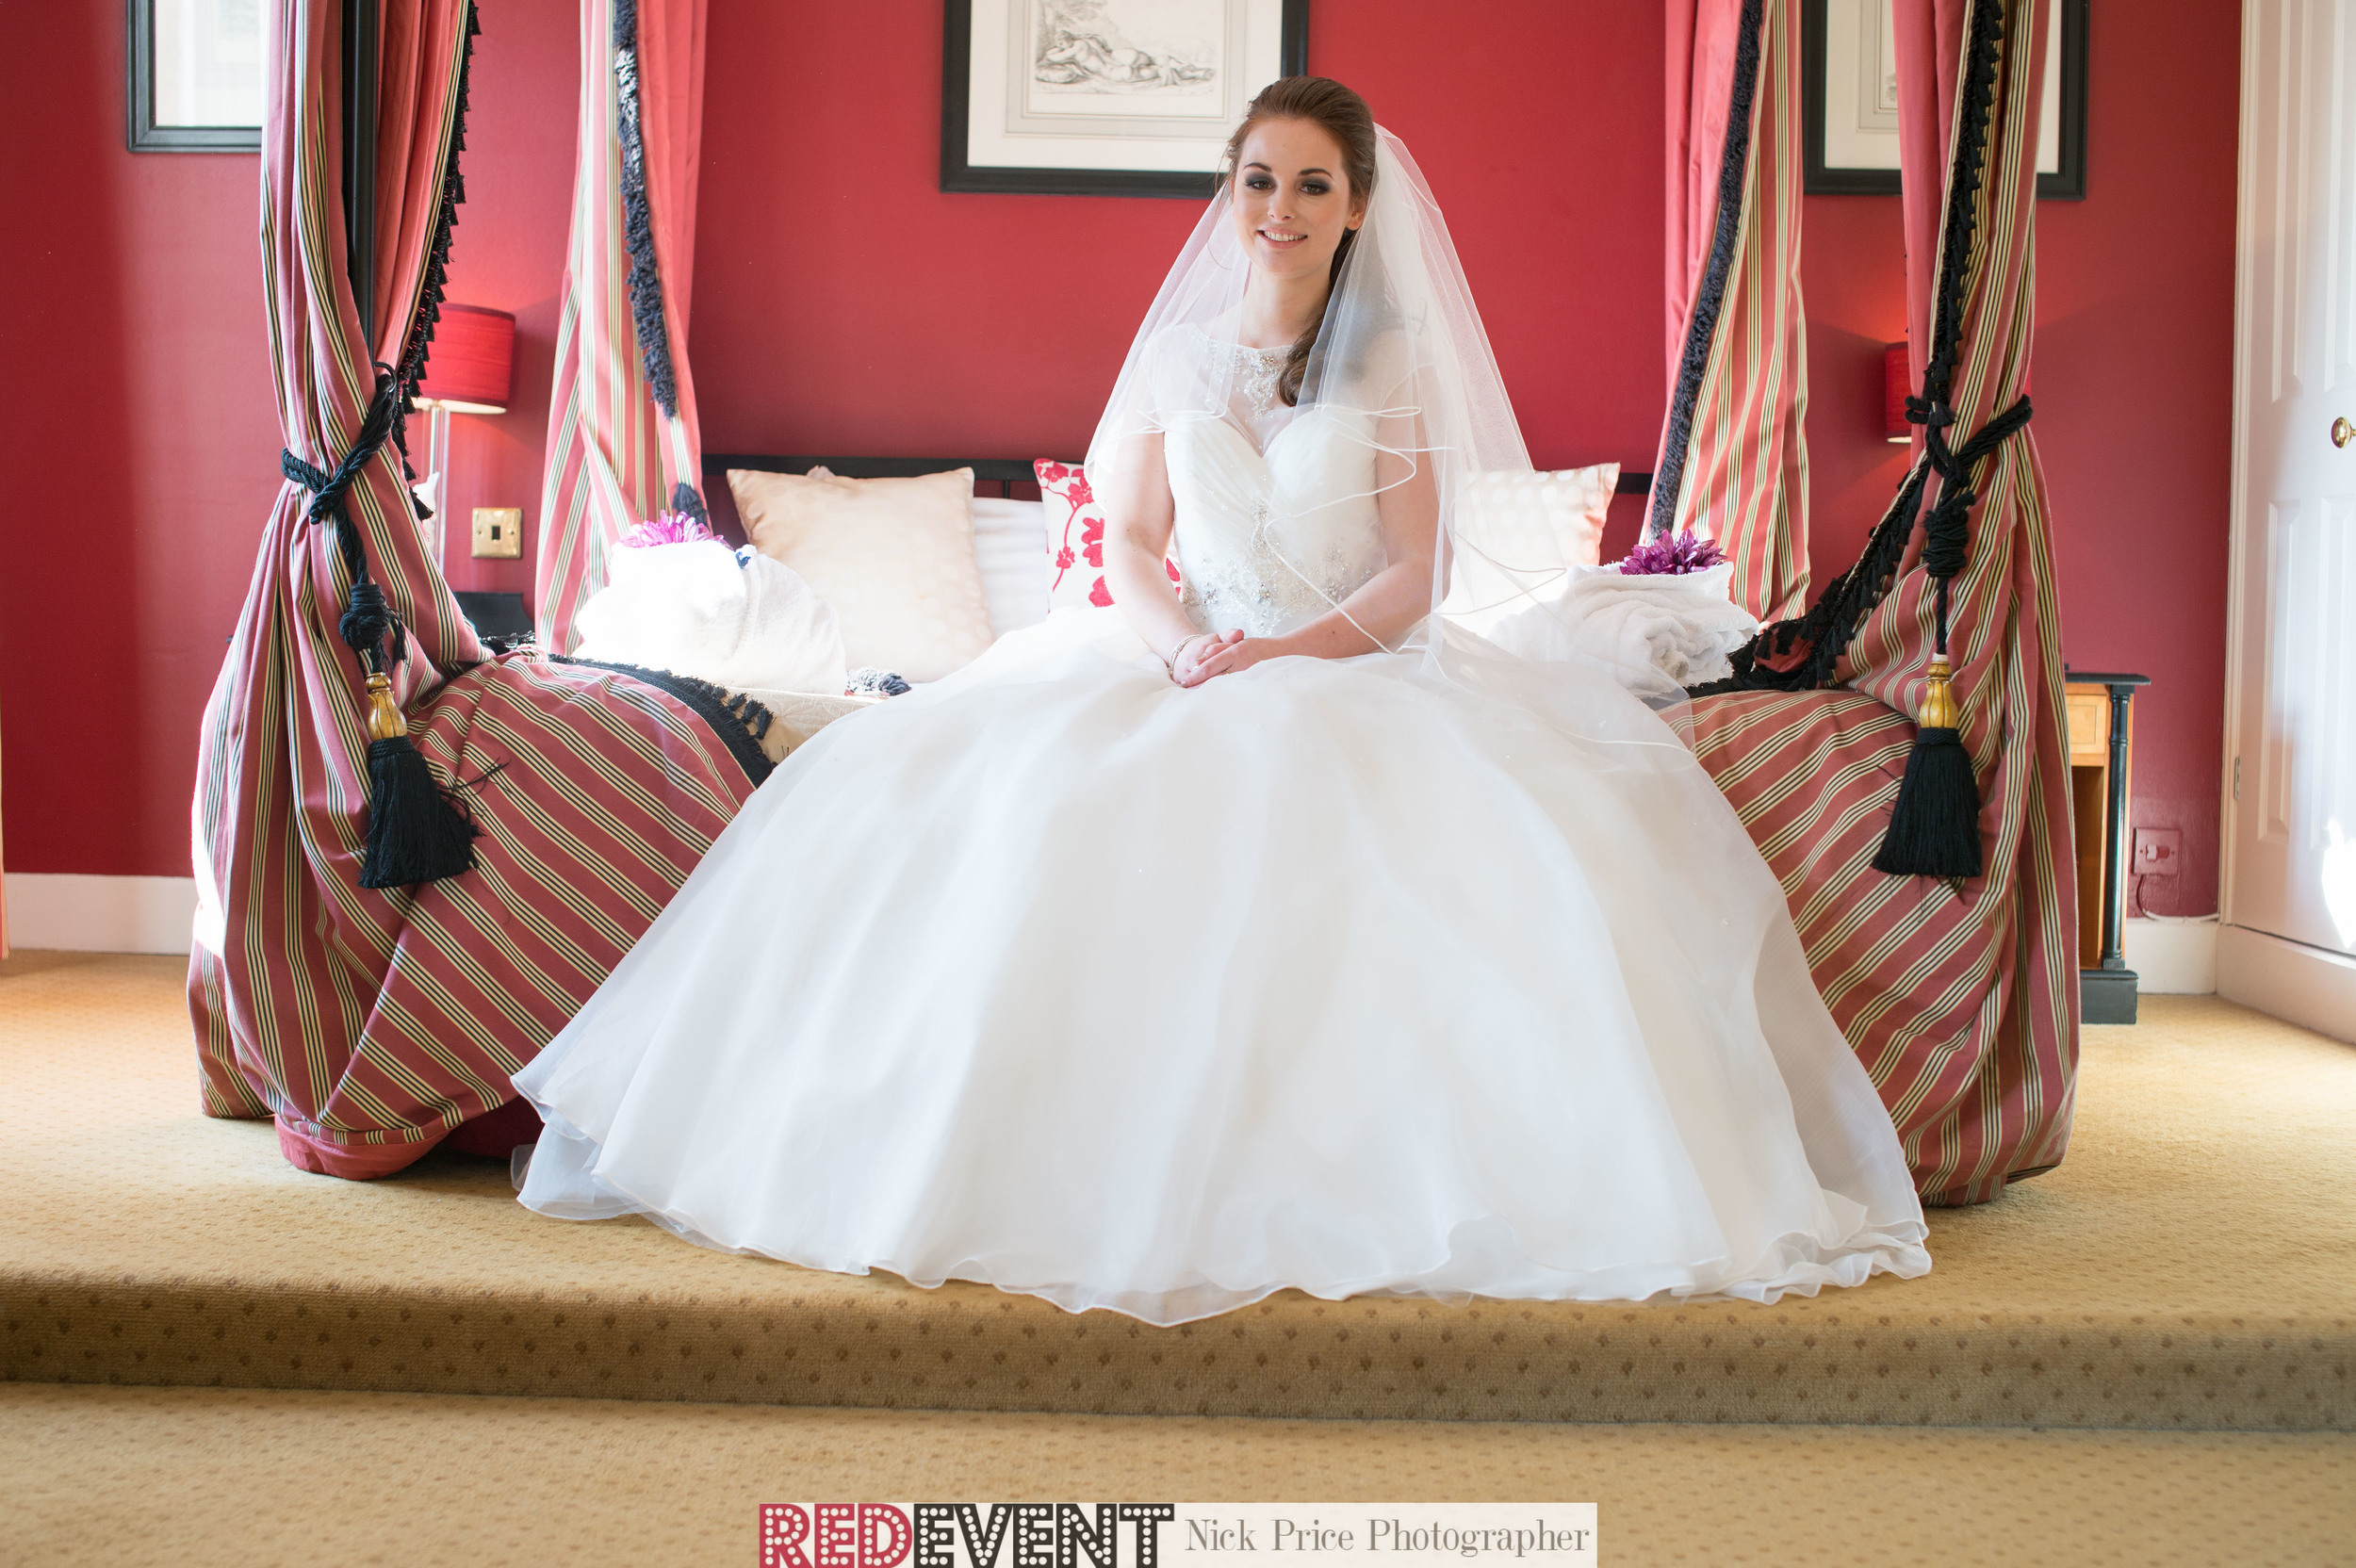 Our model Megan in The Bridal Suite